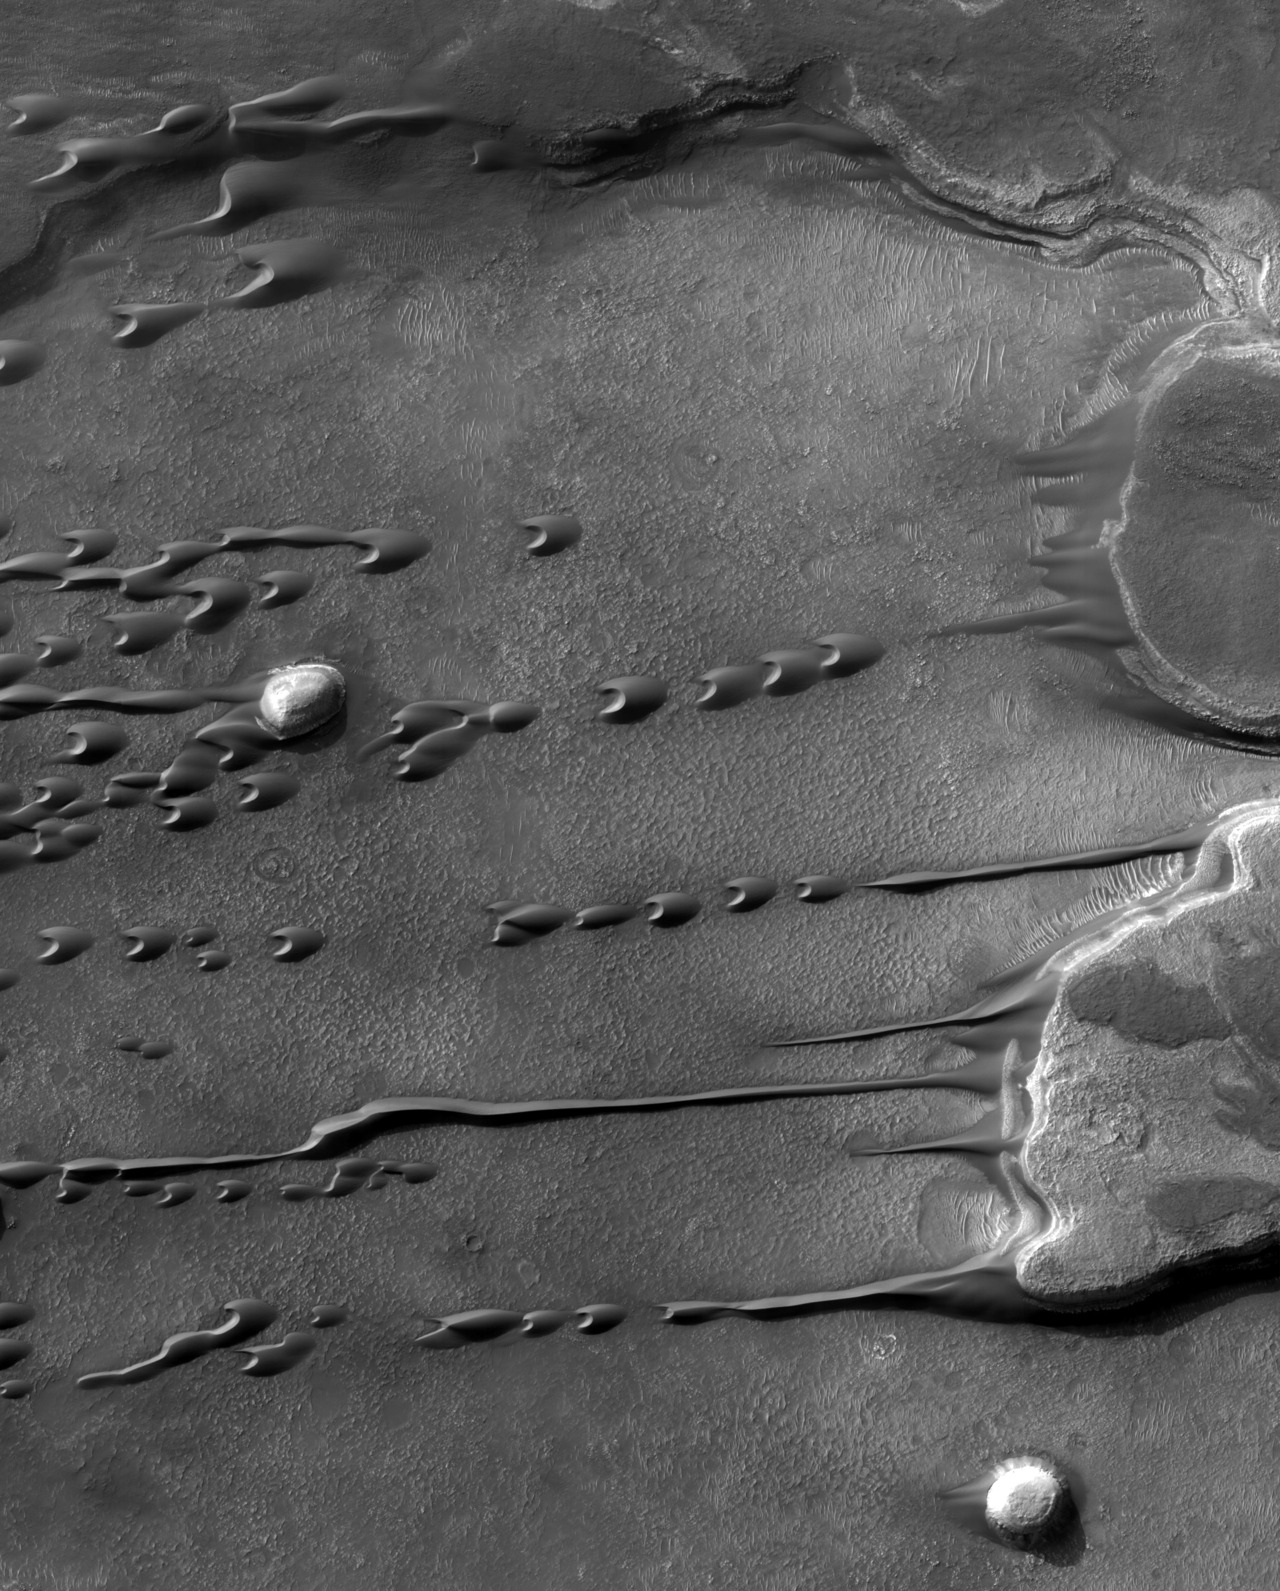 Flowing Barchan sand dunes on Mars, looking like liquid. Although liquids freeze and evaporate quickly into the thin atmosphere of Mars, persistent winds may make large sand dunes appear to flow and even drip like a liquid. Visible on the above image right are two flat top mesas in southern Mars when the season was changing from Spring to Summer. A light dome topped hill is also visible on the far left of the image. As winds blow from right to left, flowing sand on and around the hills leaves picturesque streaks. The dark arc-shaped droplets of fine sand are called barchans, and are the interplanetary cousins of similar Earth-based sand forms. Barchans can move intact a downwind and can even appear to pass through each other. When seasons change, winds on Mars can kick up dust and are monitored to see if they escalate into another of Mars' famous planet-scale sand storms.